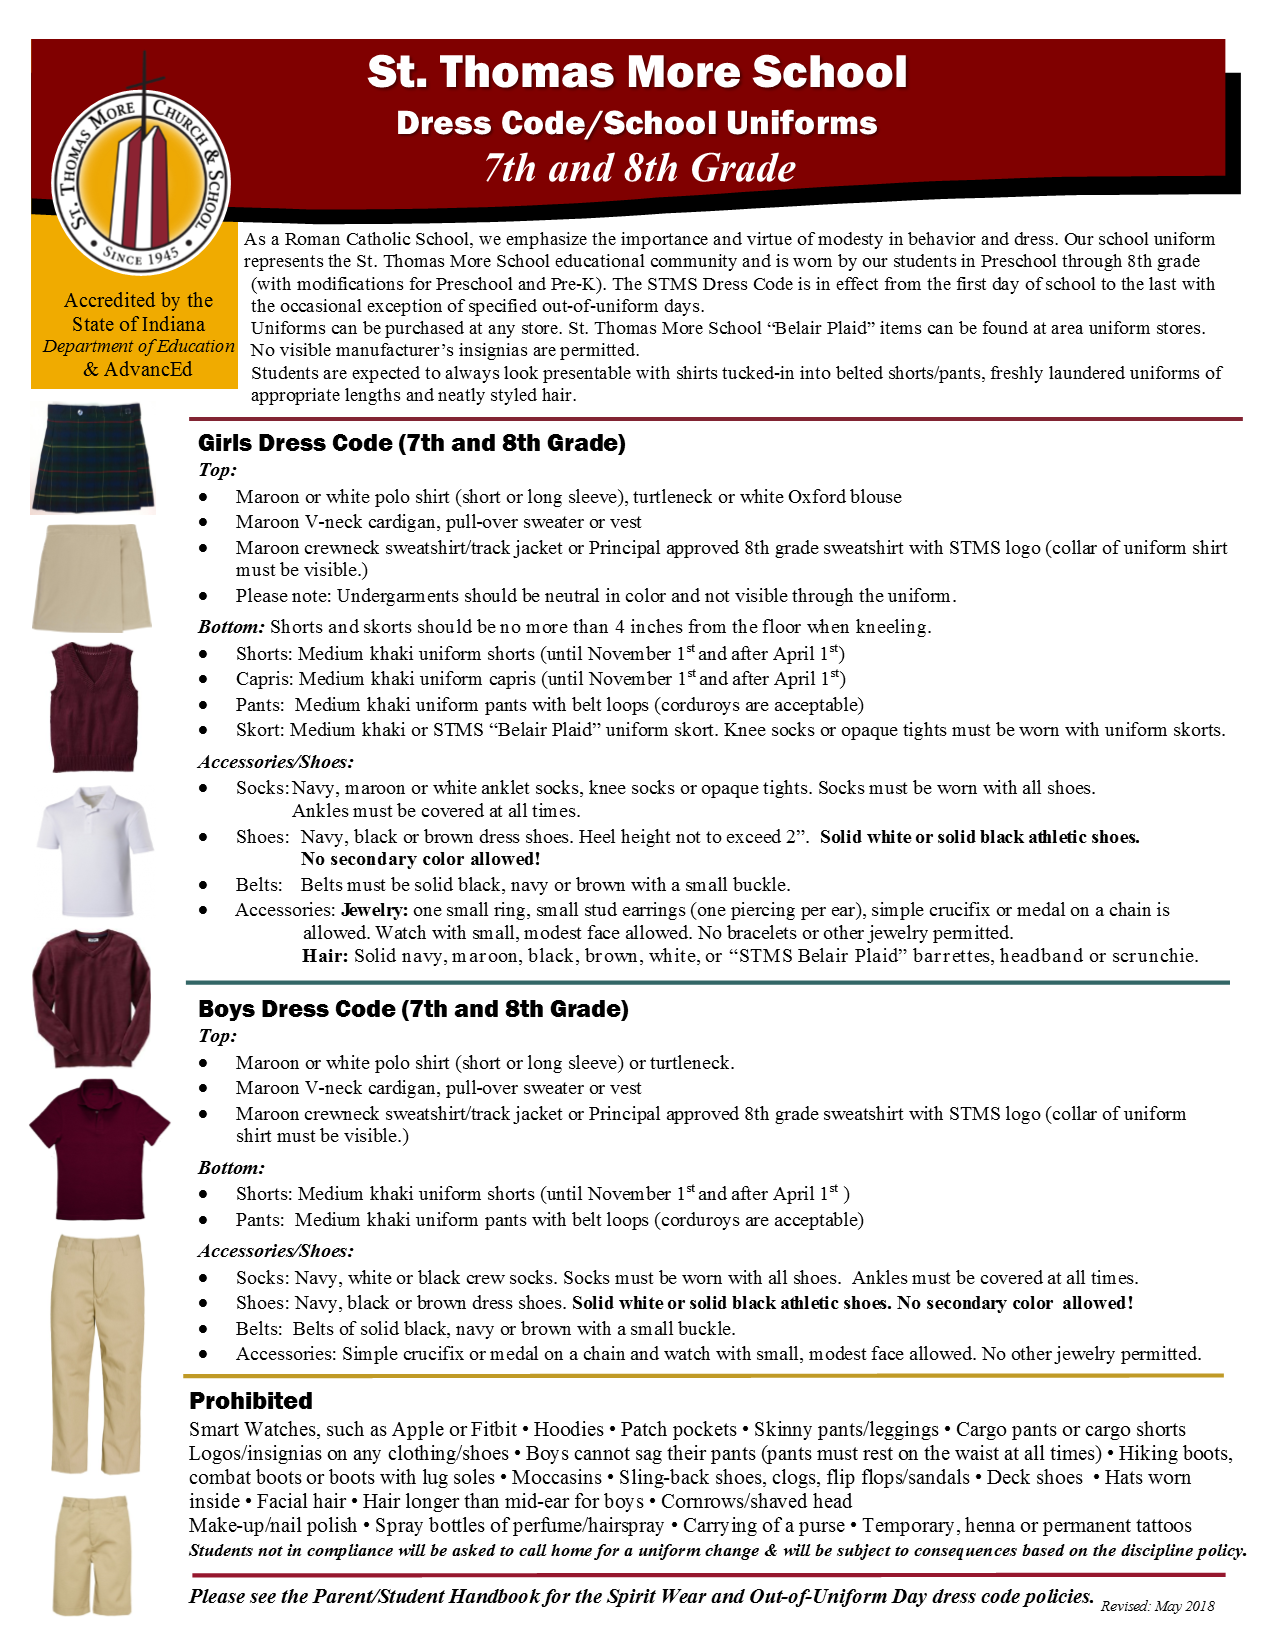 Uniform Policy for 7th and 8th Grade